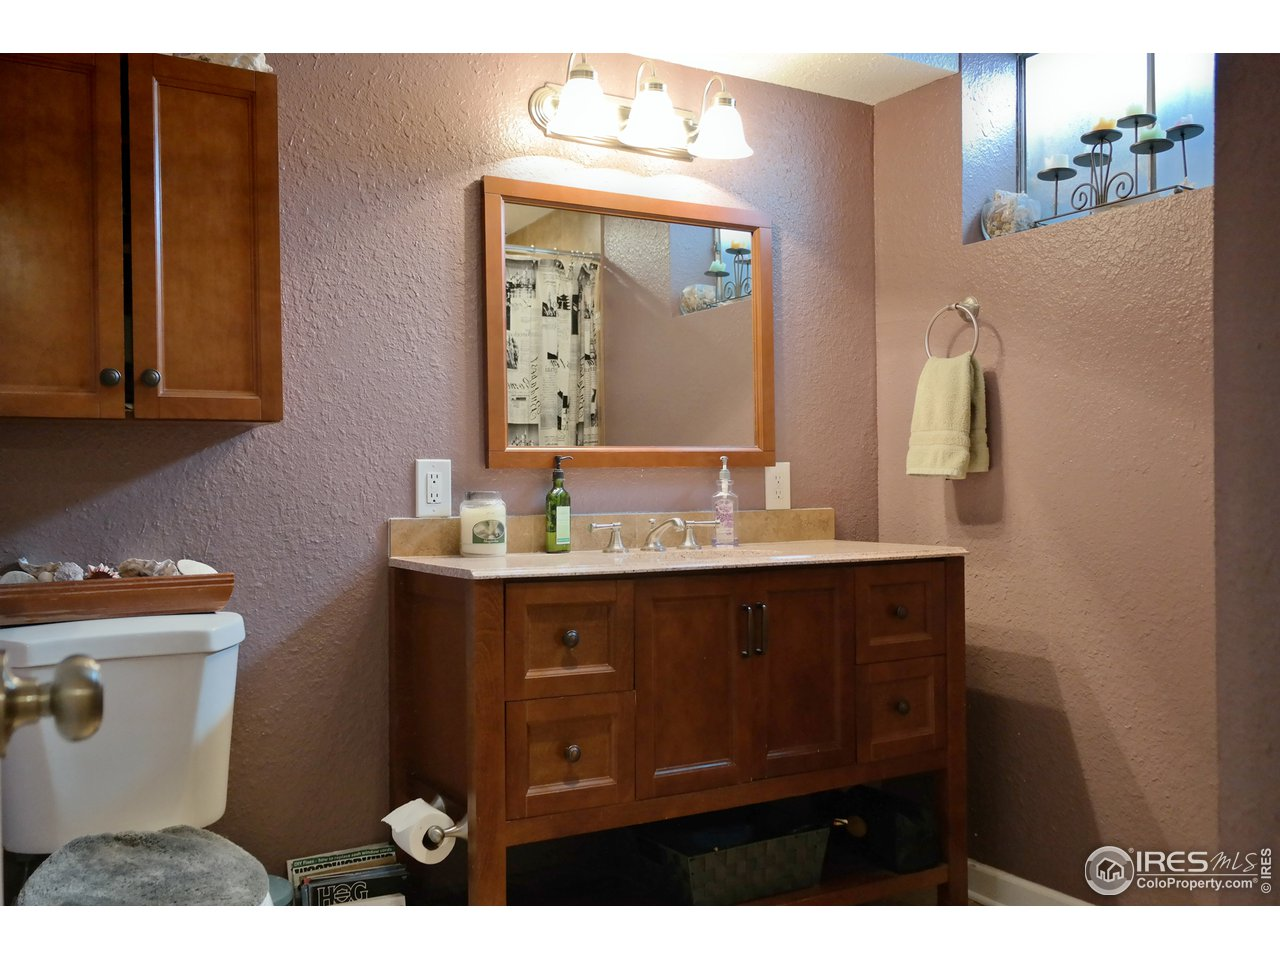 Remodeled Lower Bath w/Sweet Vanity